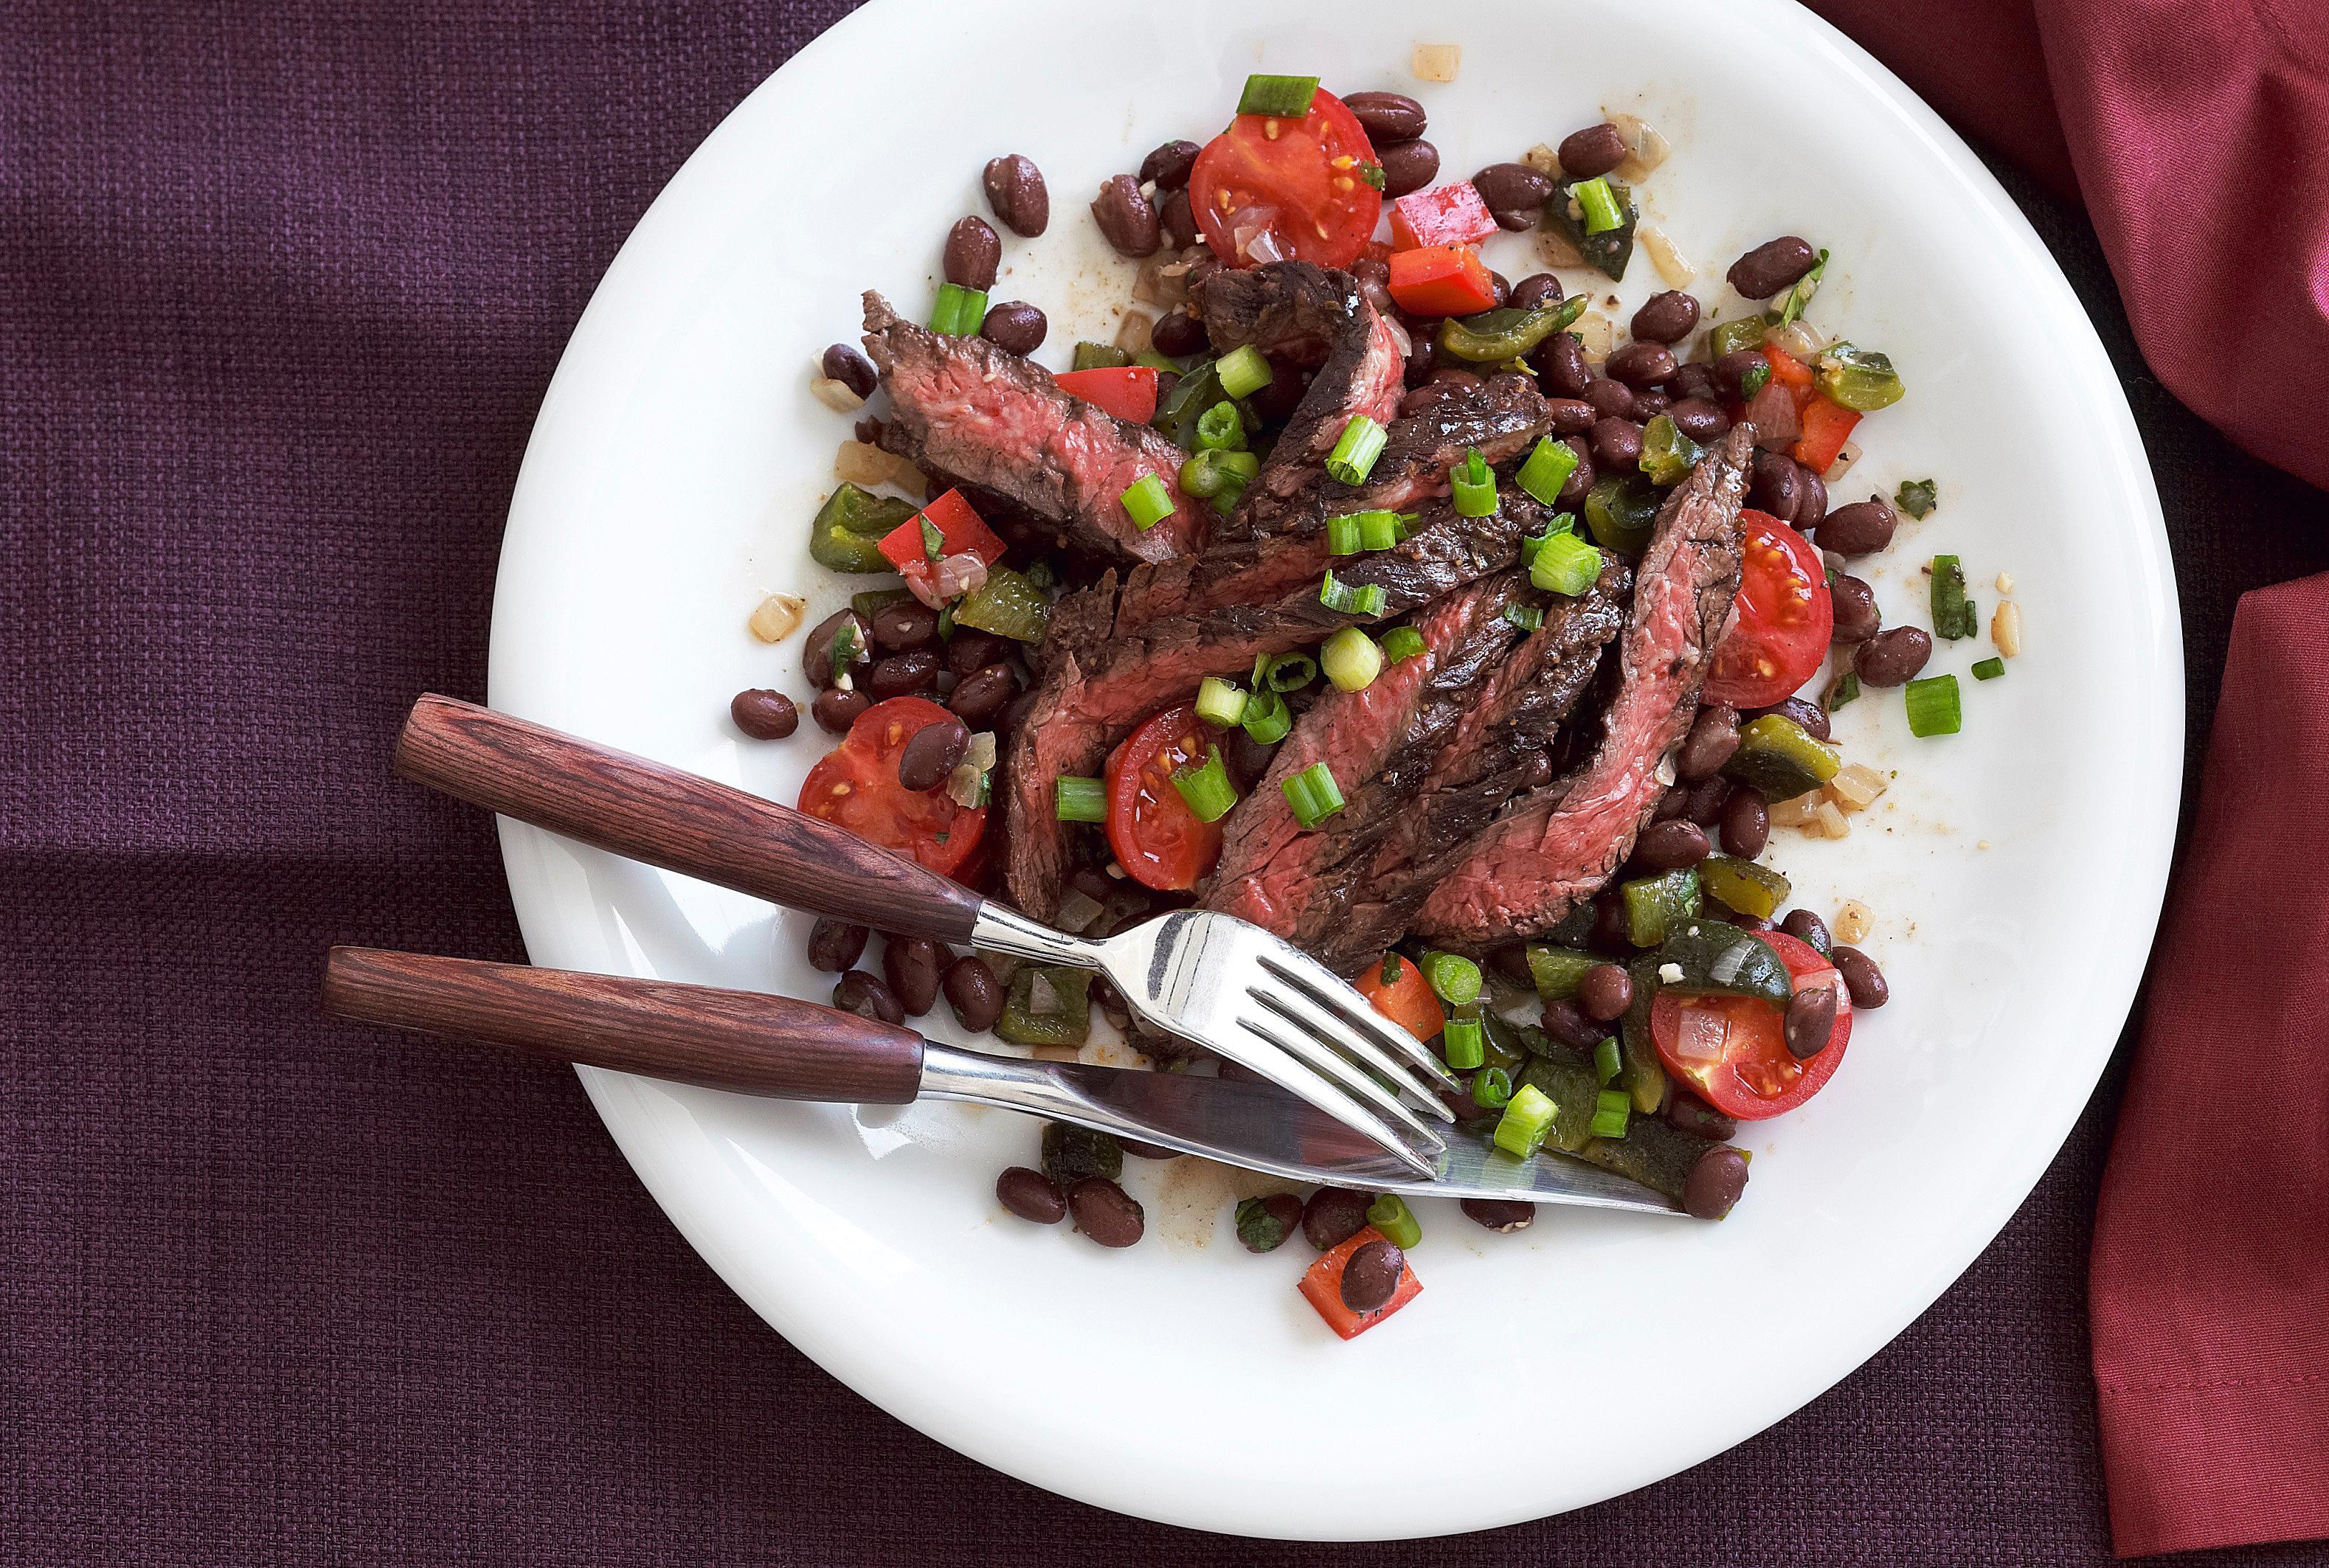 Southwest Steak and Beans